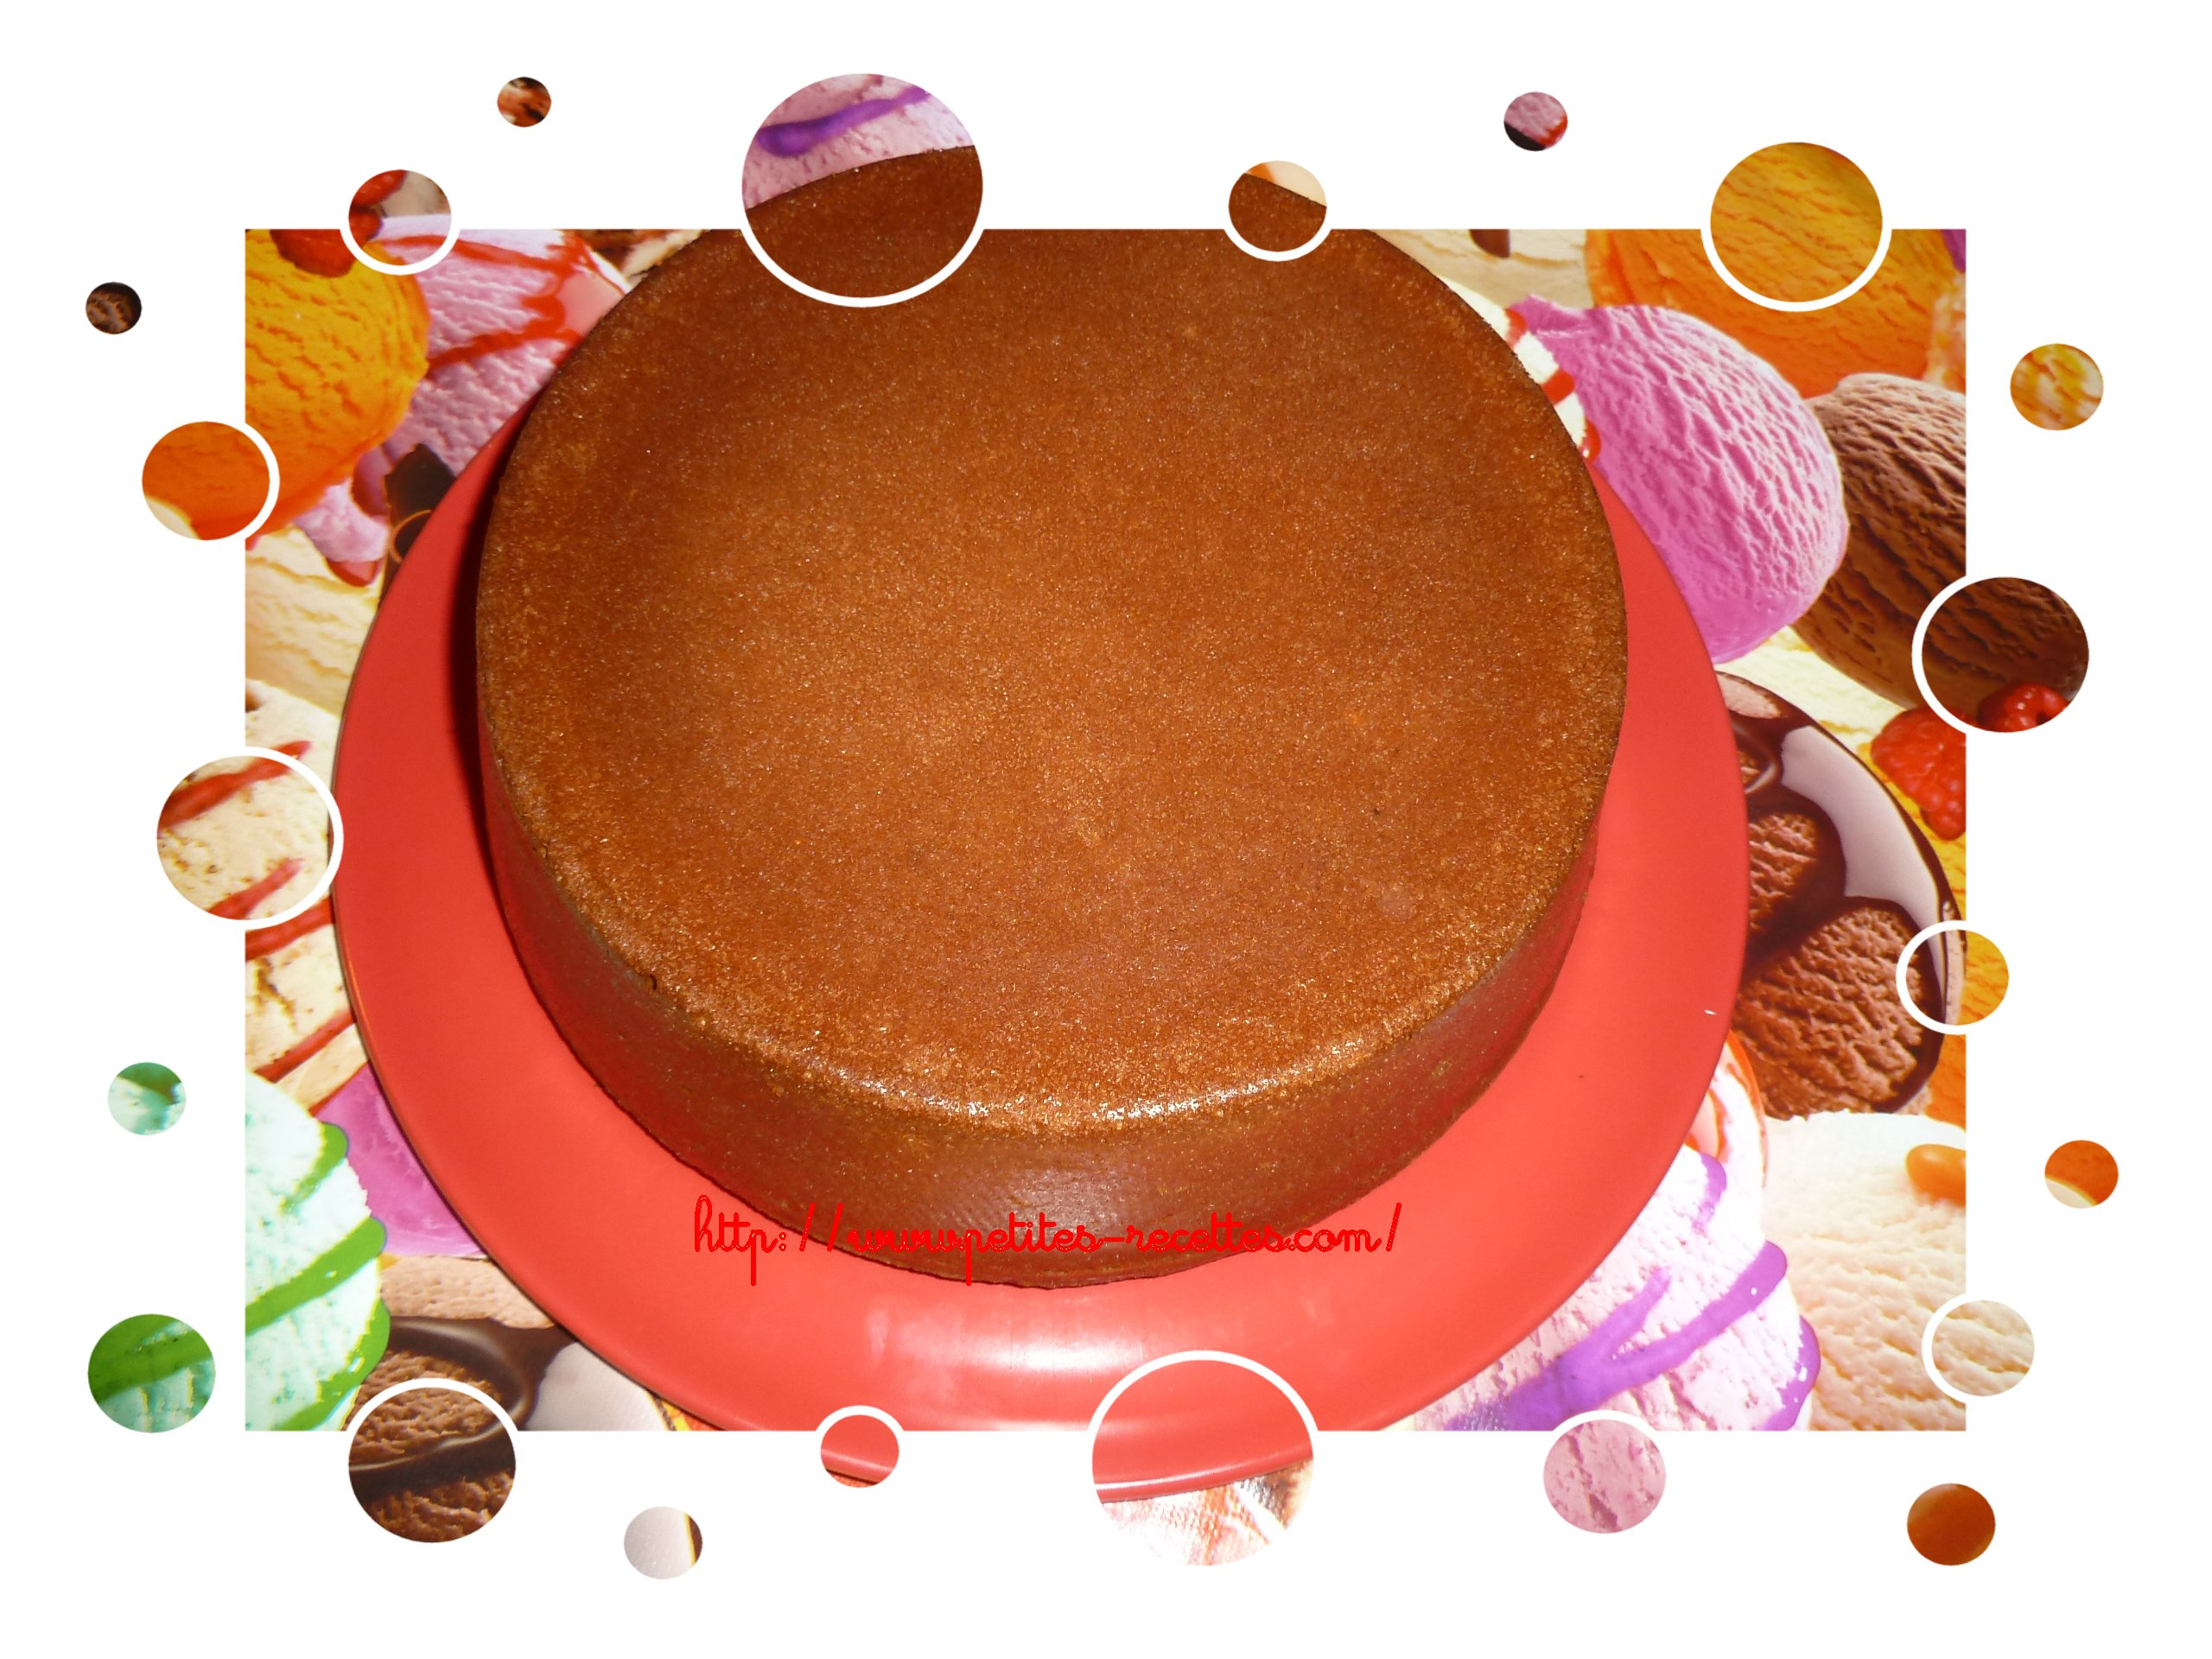 Cake Design Recette Base : Molly cake (ideal pour base de cake design)   Mes p tites ...